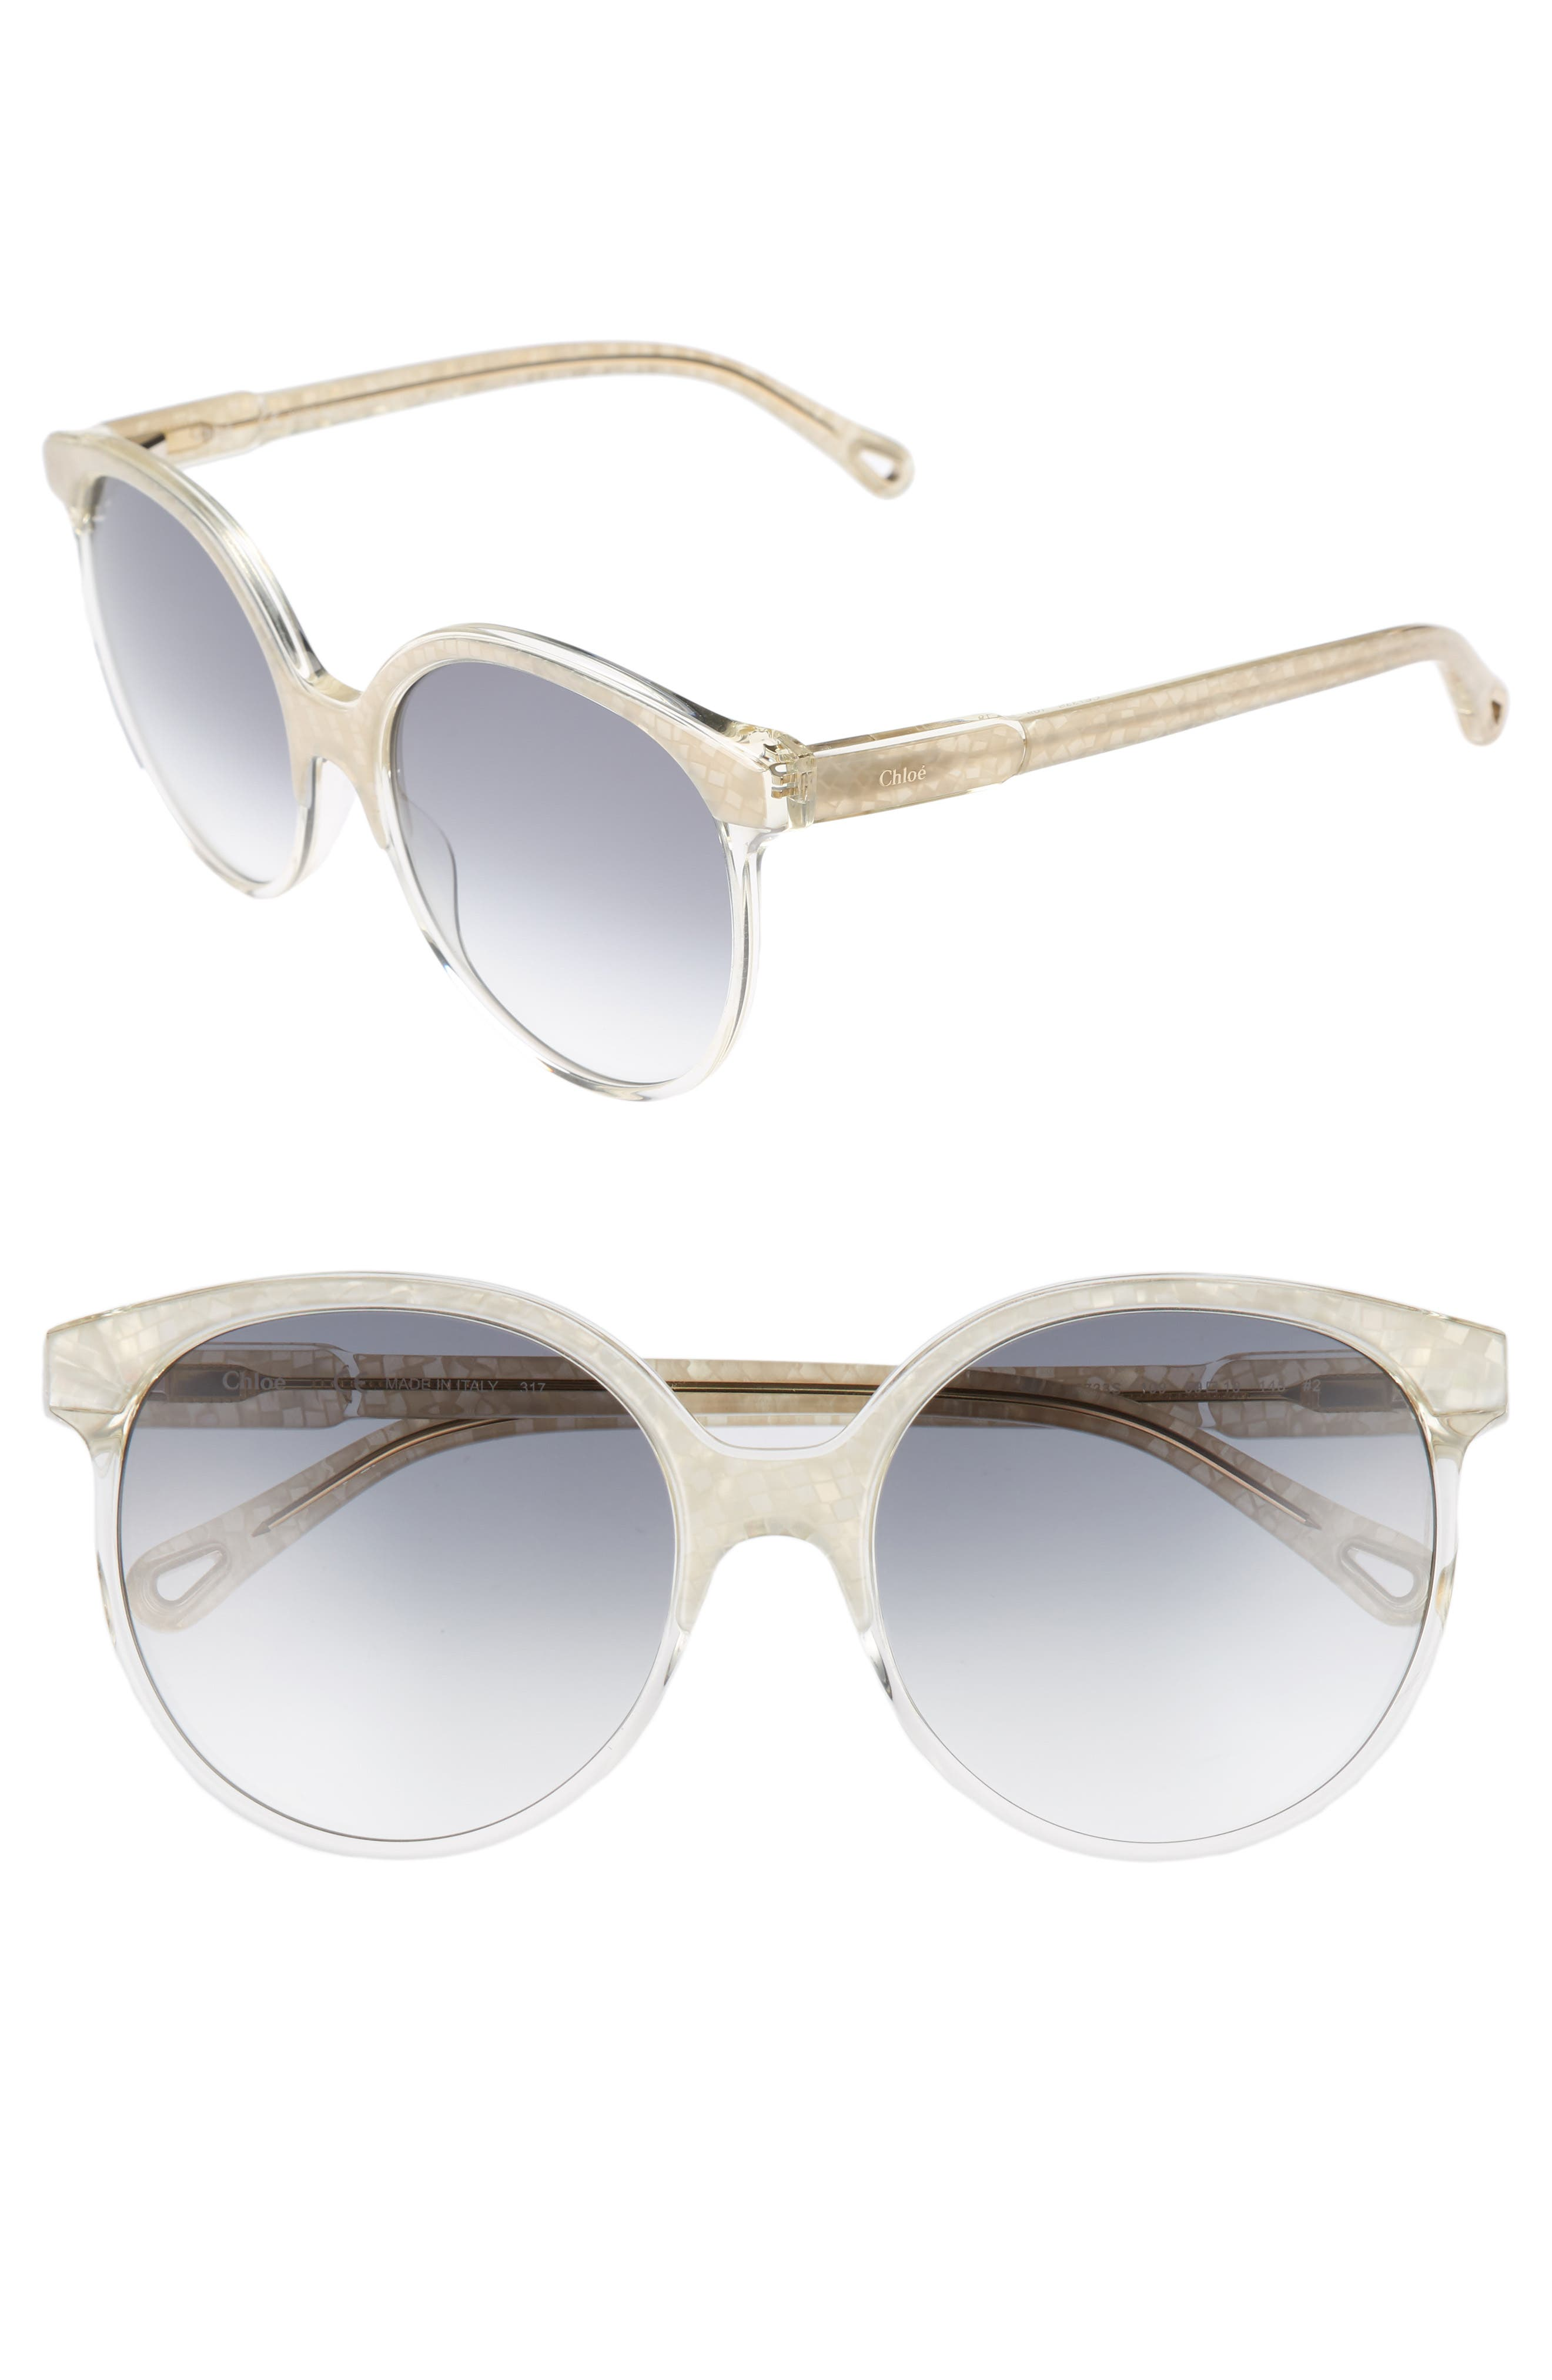 59mm Round Sunglasses,                             Main thumbnail 1, color,                             Pearl/ Champagne